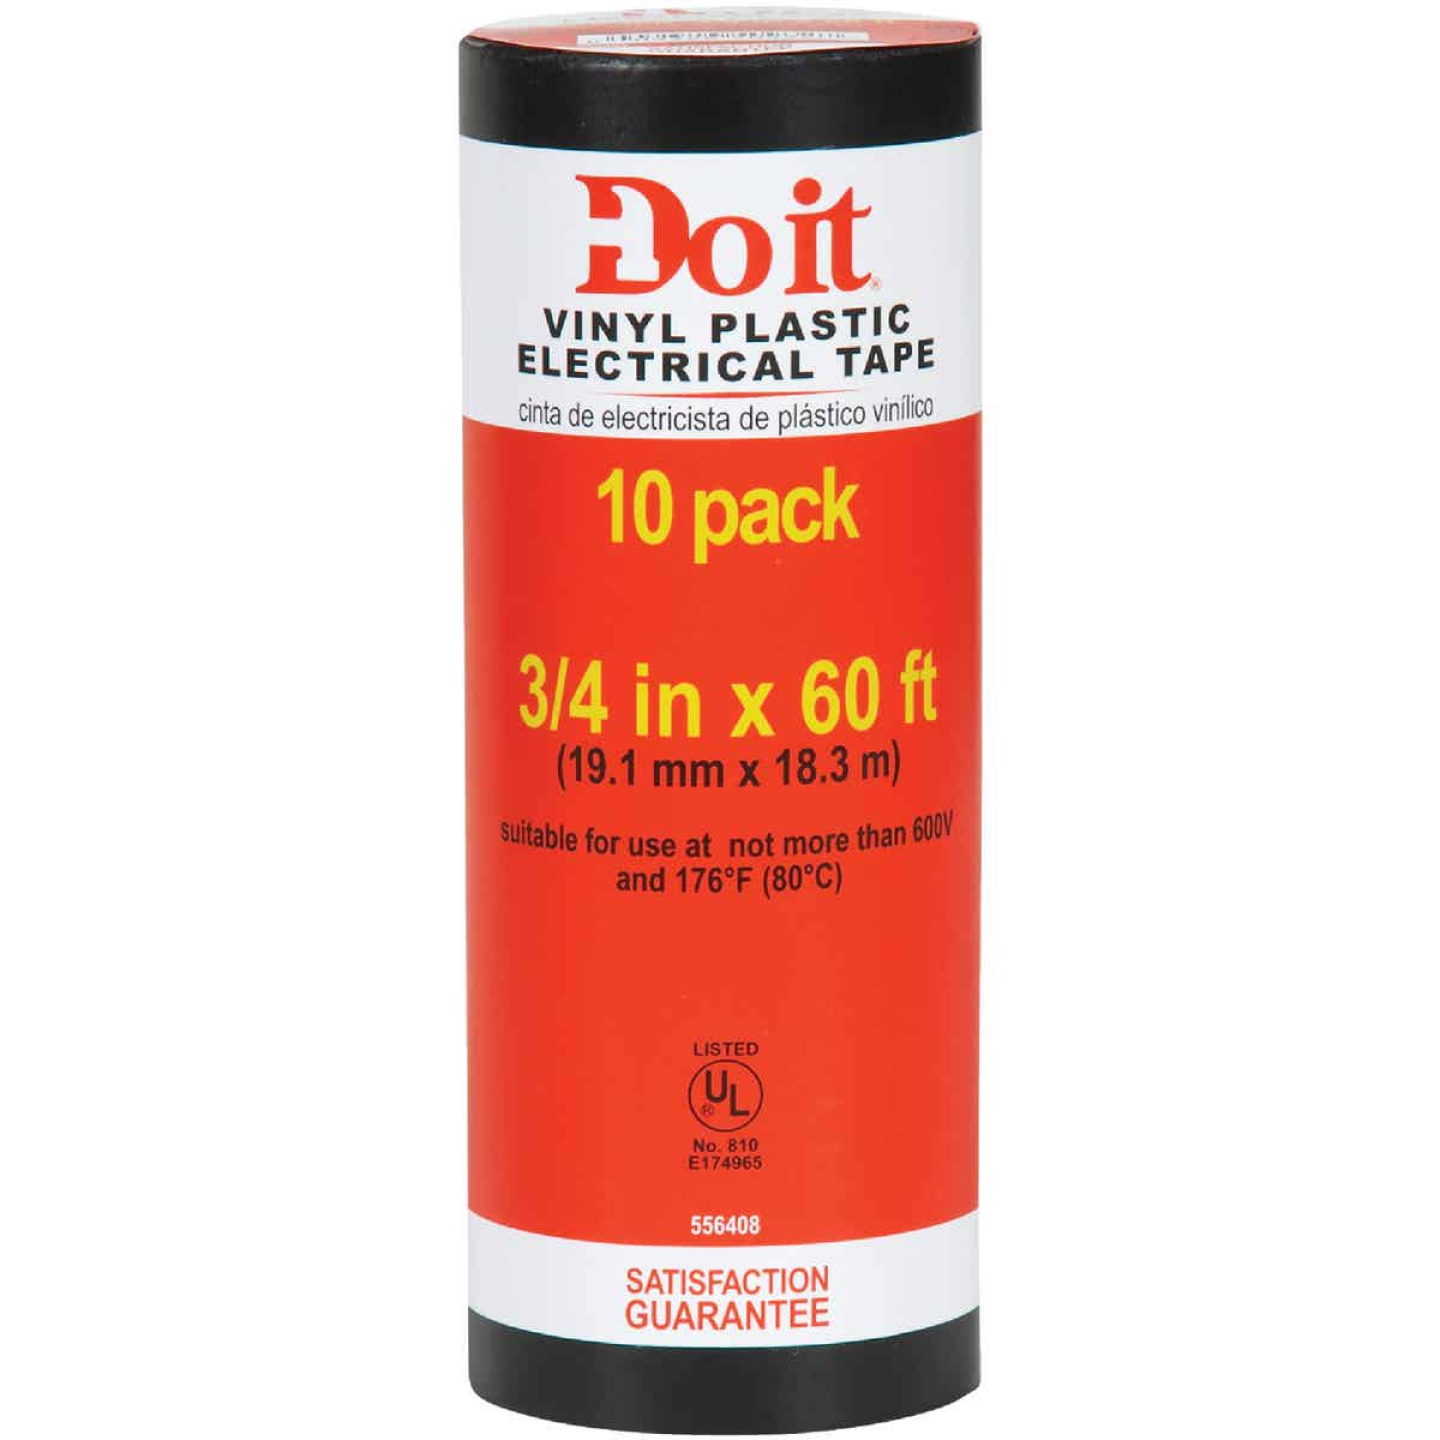 Do it General Purpose 3/4 In. x 60 Ft. Electrical Tape (10-Pack) Image 1